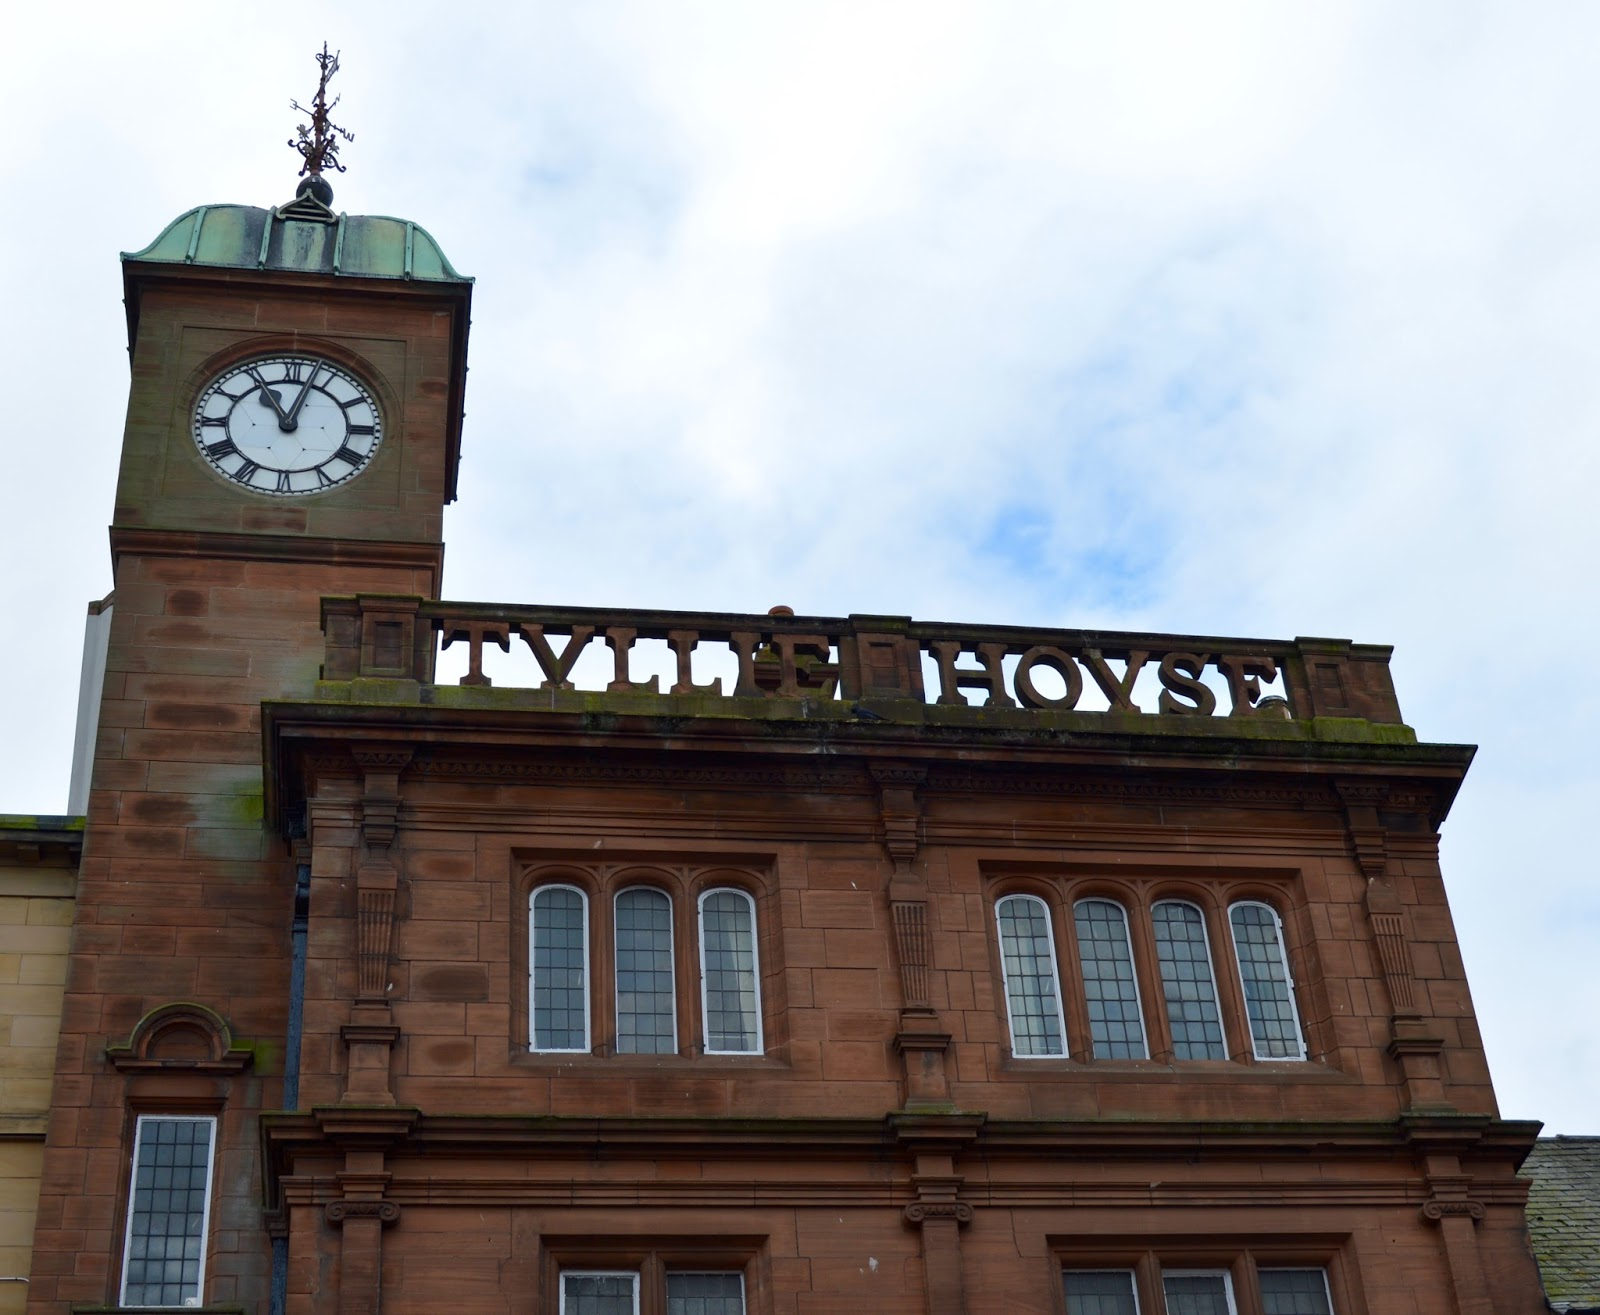 Great Days Out with Northern  | Our Day Trip to Carlisle by Train - Tullie Museum clock